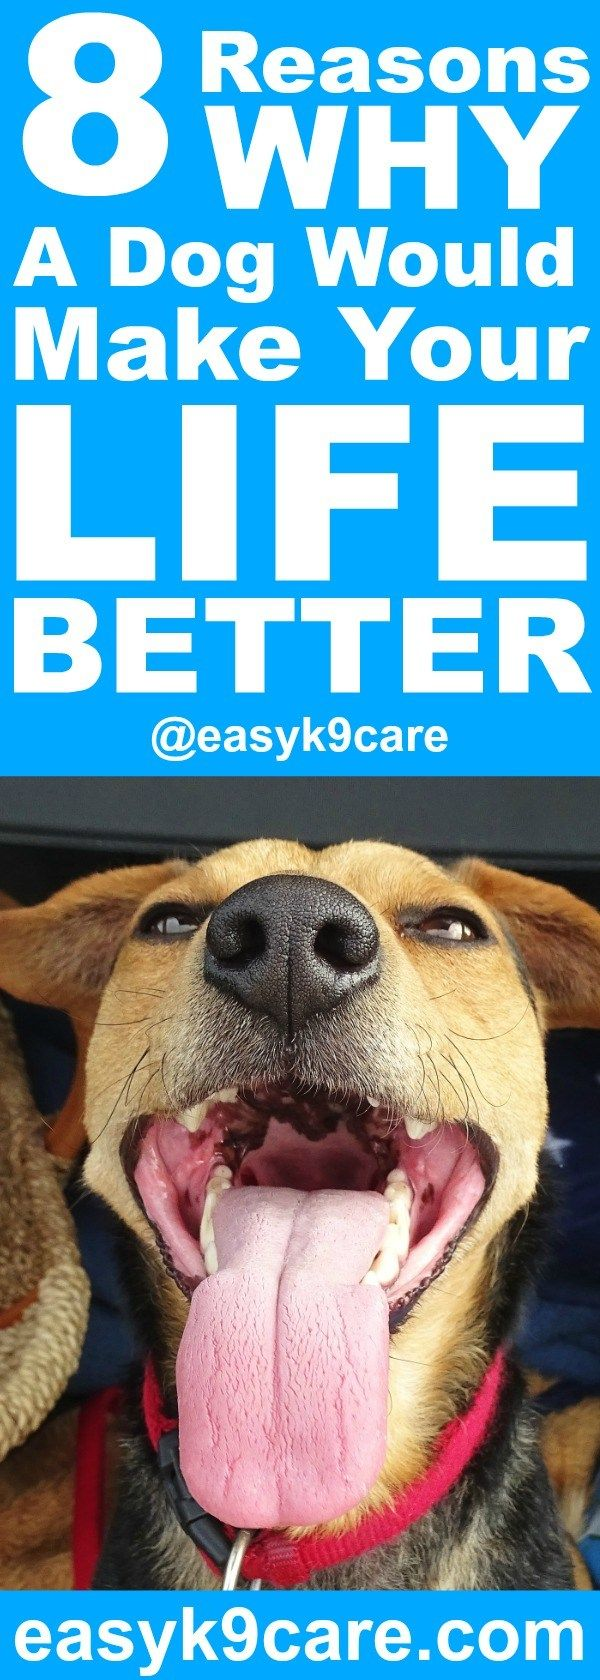 8 Reasons Why a Dog Would Make Your Life Better | Are you considering adding a dog to your family? Maybe you're considering adding another dog to your life (in which case, you should check out my post on How to Successfully Introduce a New Member of the Pack). Dogs are amazing and can be a great new addition to your life. Here are 8 reasons why a dog would make your life better: